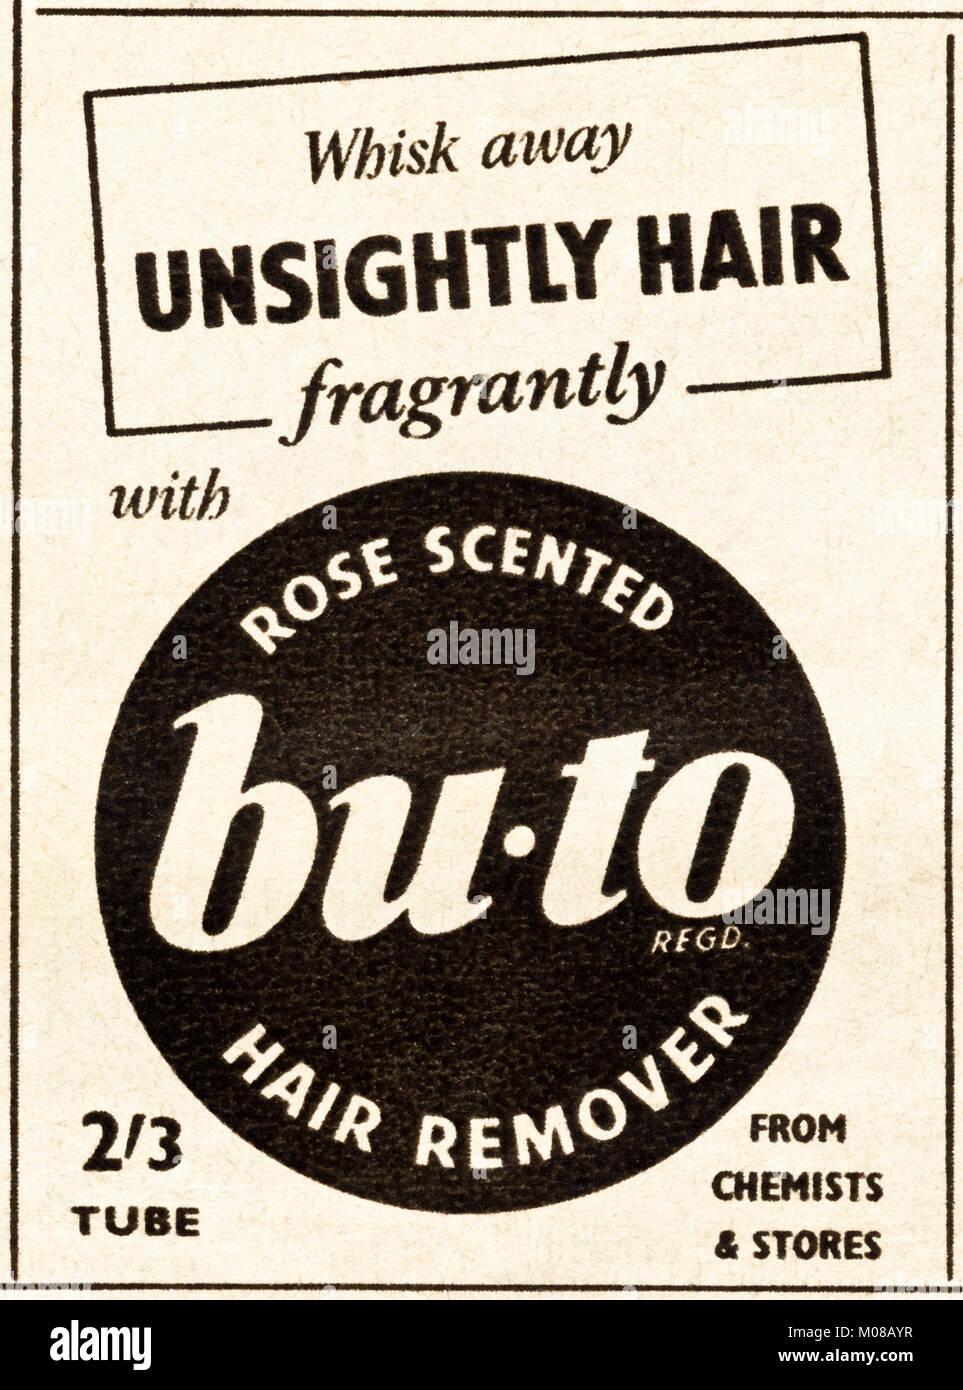 1950s old vintage original advert advertising bu-to rose scented hair remover in magazine circa 1954 - Stock Image